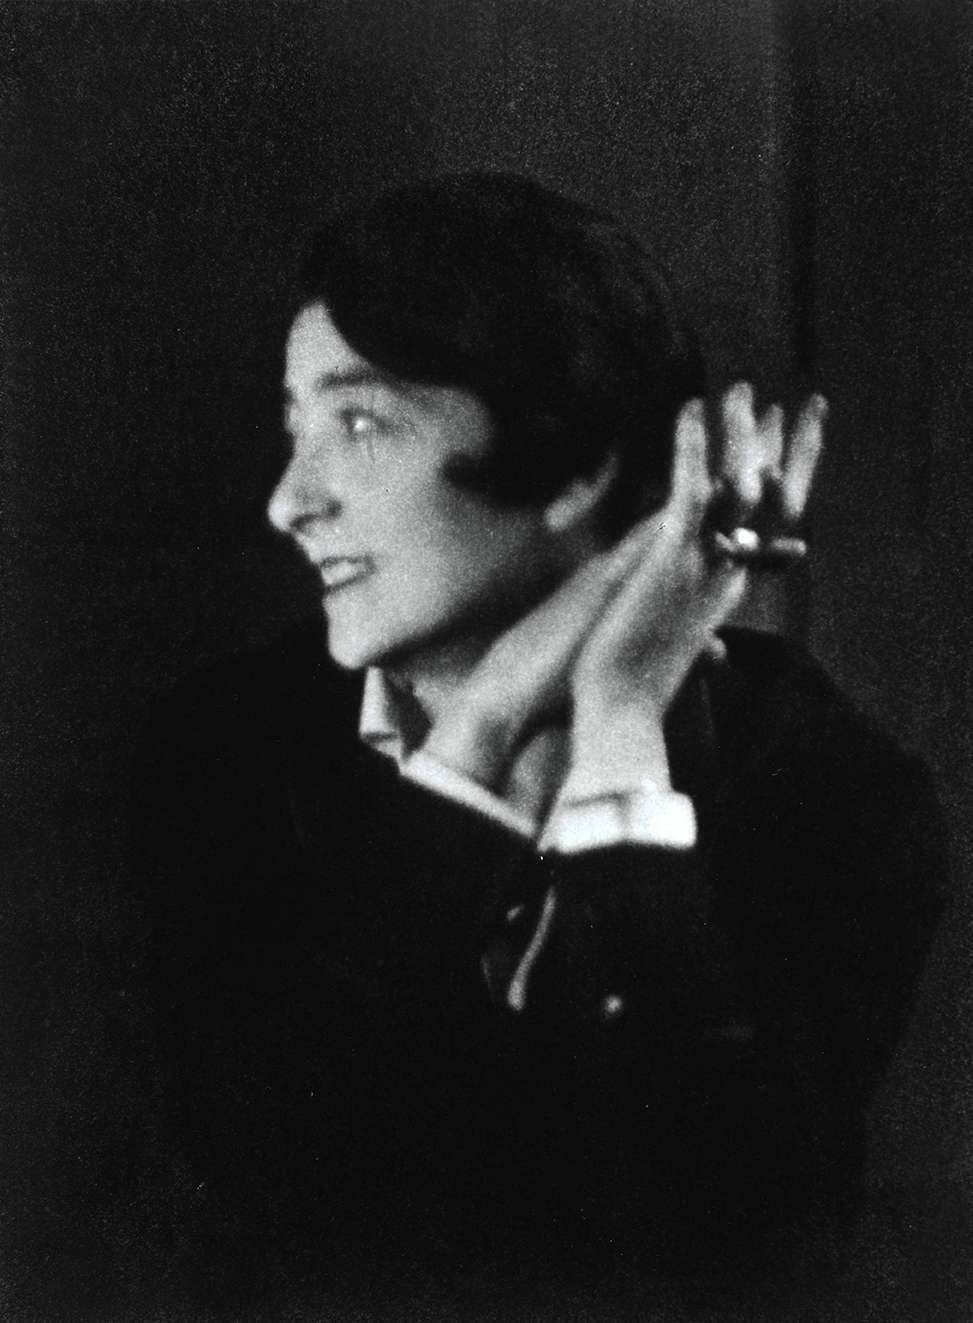 """<span style=""""font-family: Theinhardt, -apple-system, BlinkMacSystemFont, &quot;Segoe UI&quot;, Roboto, Oxygen-Sans, Ubuntu, Cantarell, &quot;Helvetica Neue&quot;, sans-serif;"""">A fierce, independent woman and an innovative designer, Eileen Gray wove art, design, and architecture together into distinct projects that celebrated femininity and inspired both Modernism and Art Deco.</span>  Photo 6 of 6 in Design Icon: Eileen Gray"""